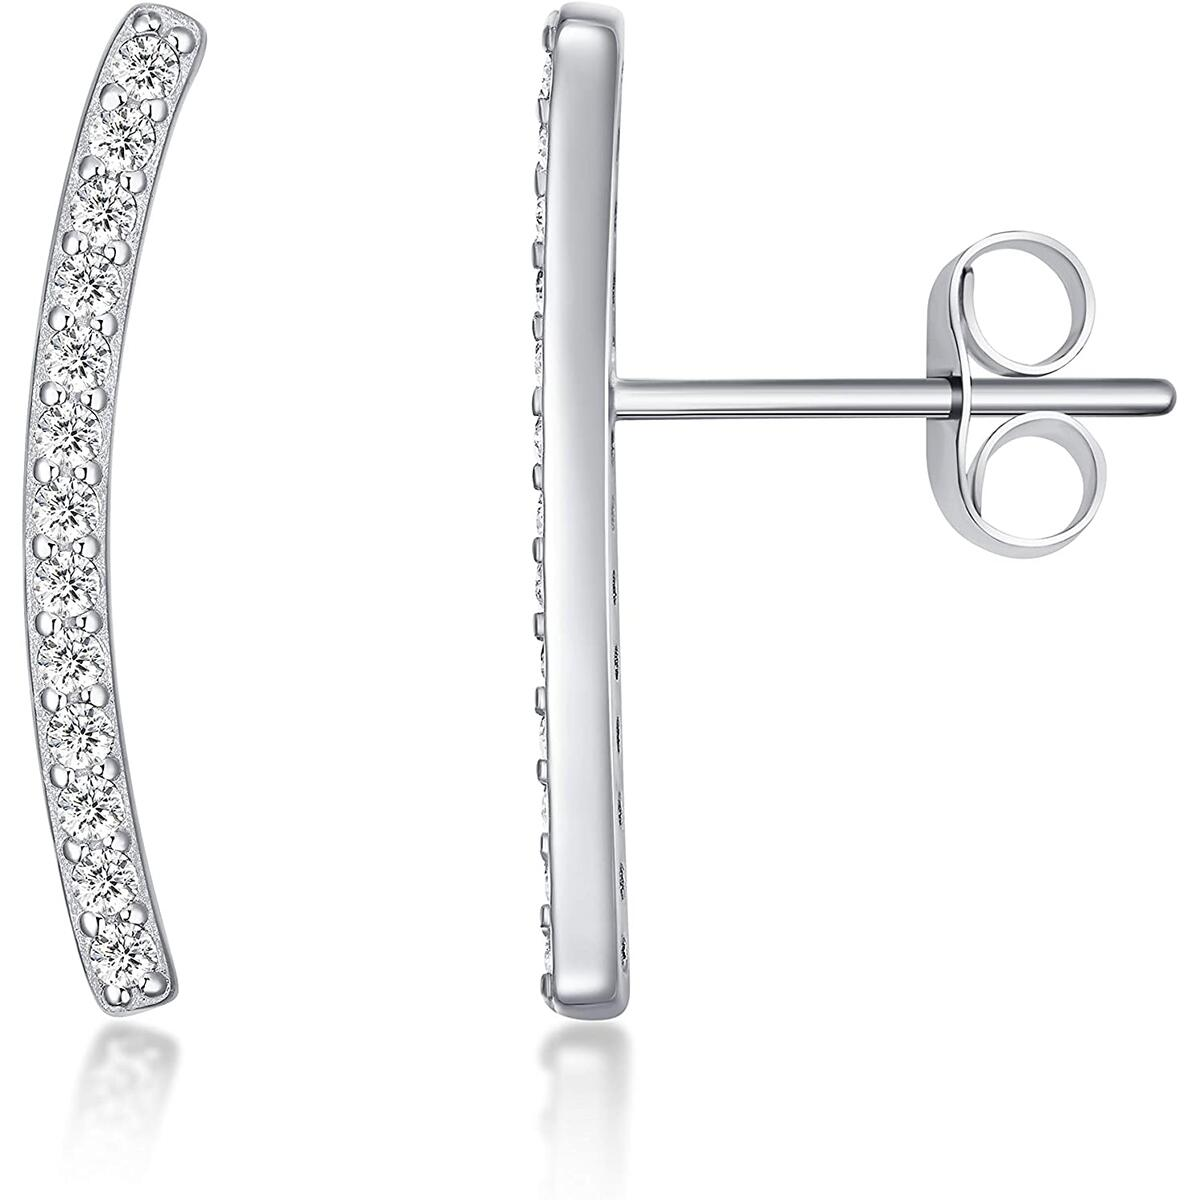 Sterling Silver - CZ Ear Crawler - Crawling Cuff Earrings - Climber Jackets - Stud Earrings - for Women perfect gift